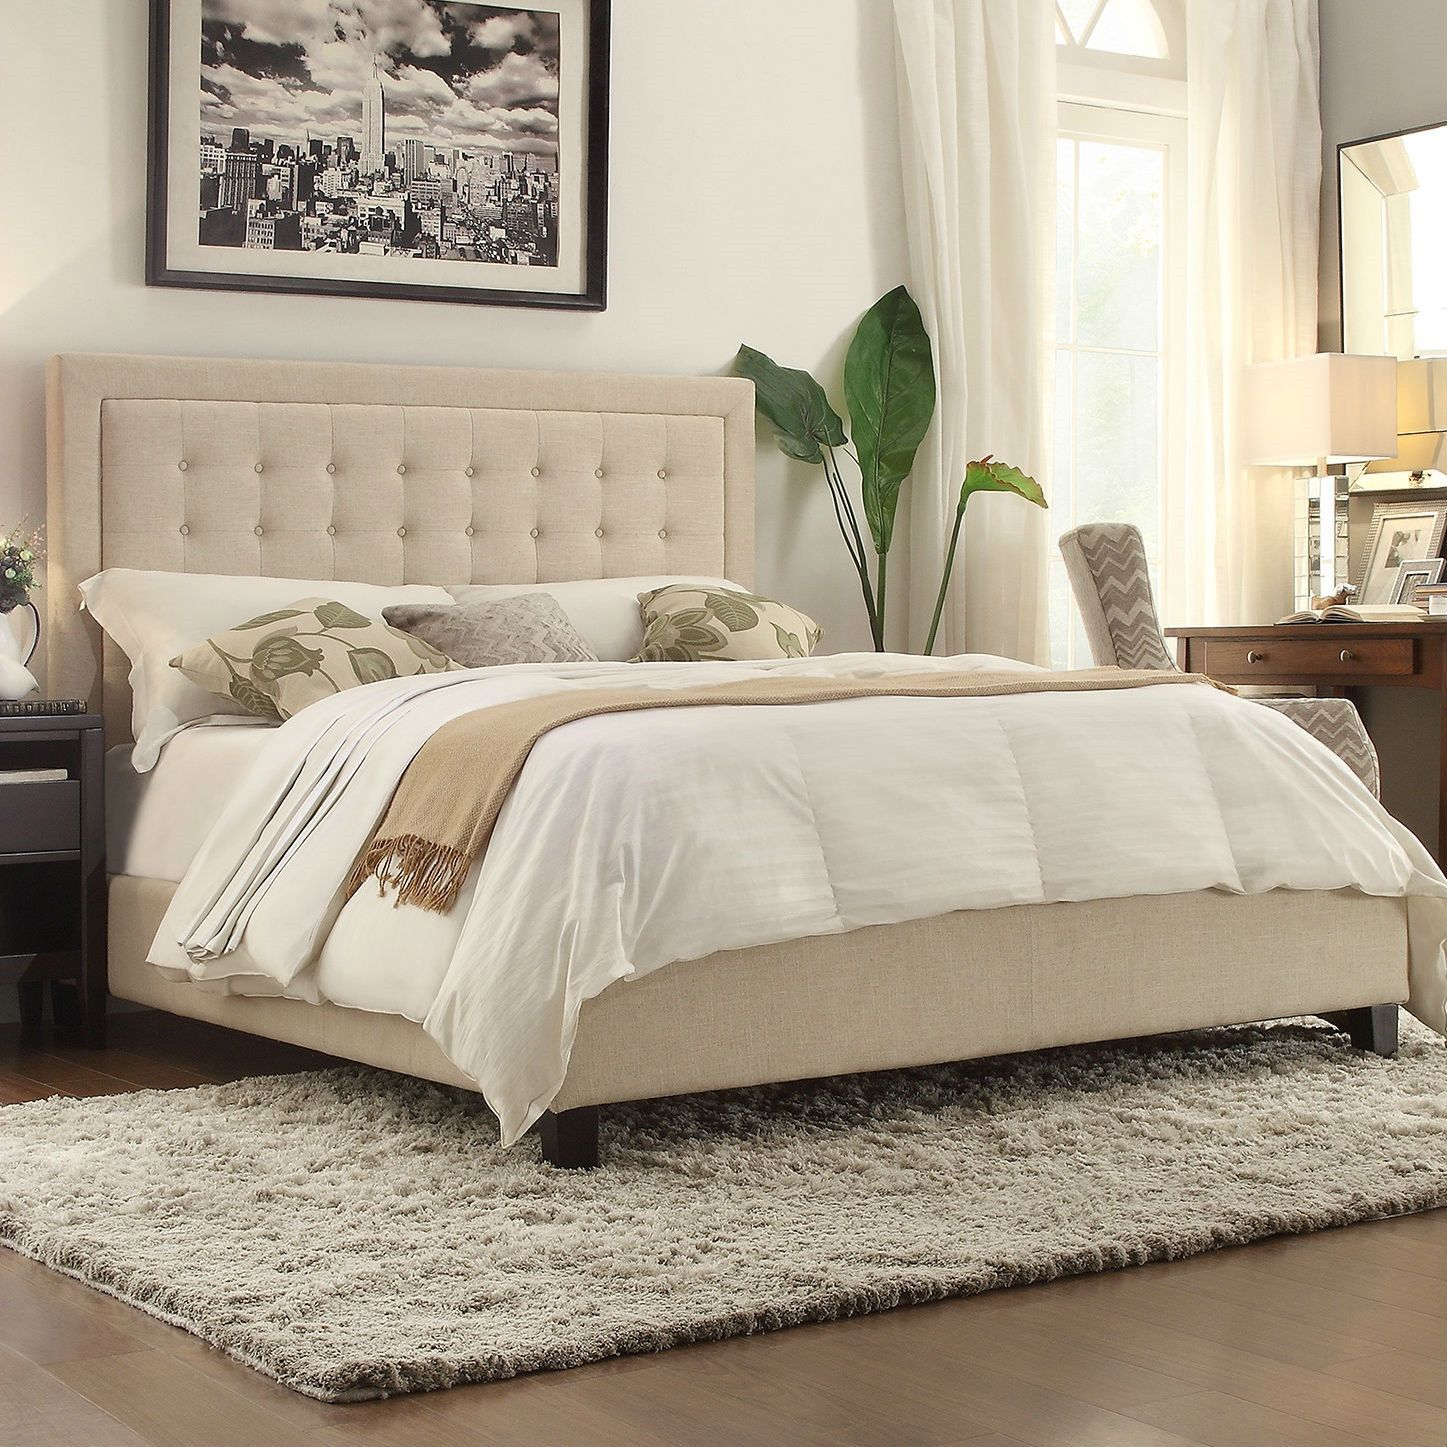 Best King Size Beige Upholstered Bed With Button Tufted 640 x 480